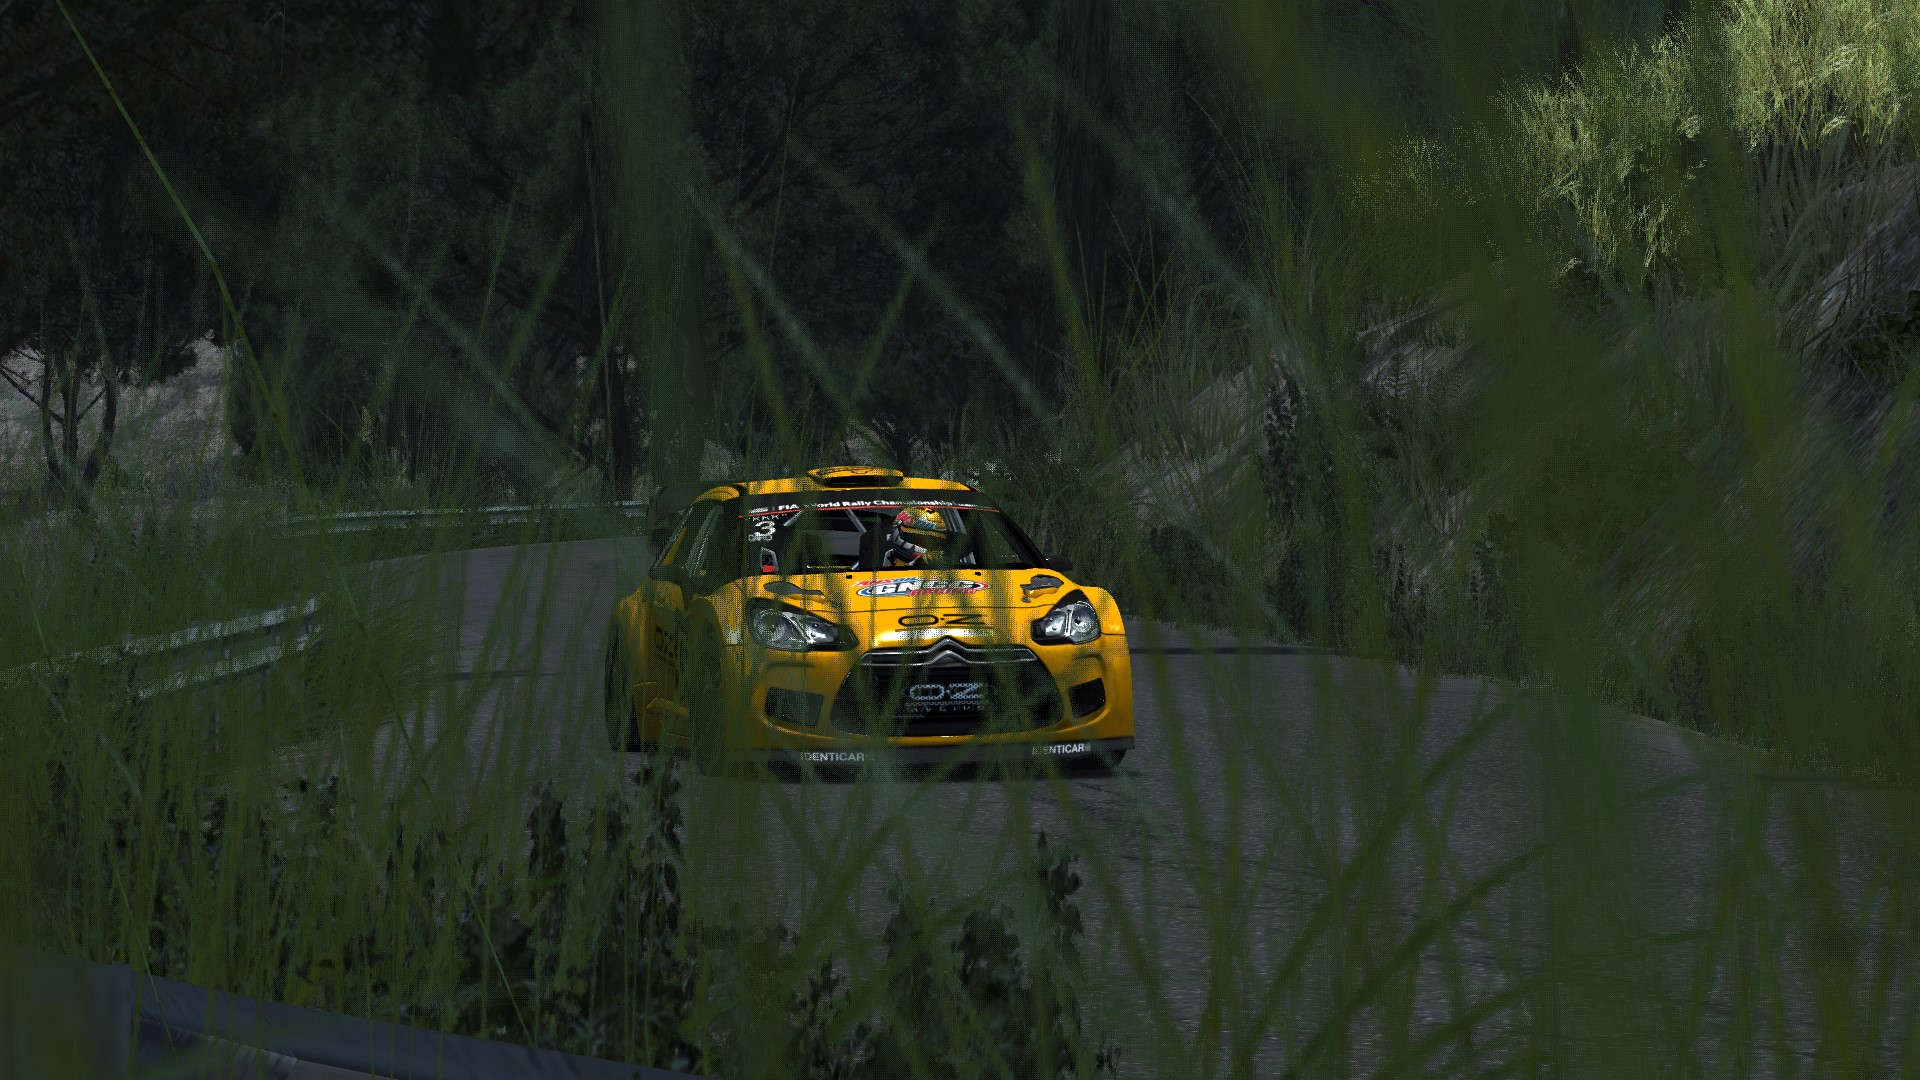 Screenshot_ds3_wrc_2015_hillclimb_moya_20-2-116-21-50-30.jpg